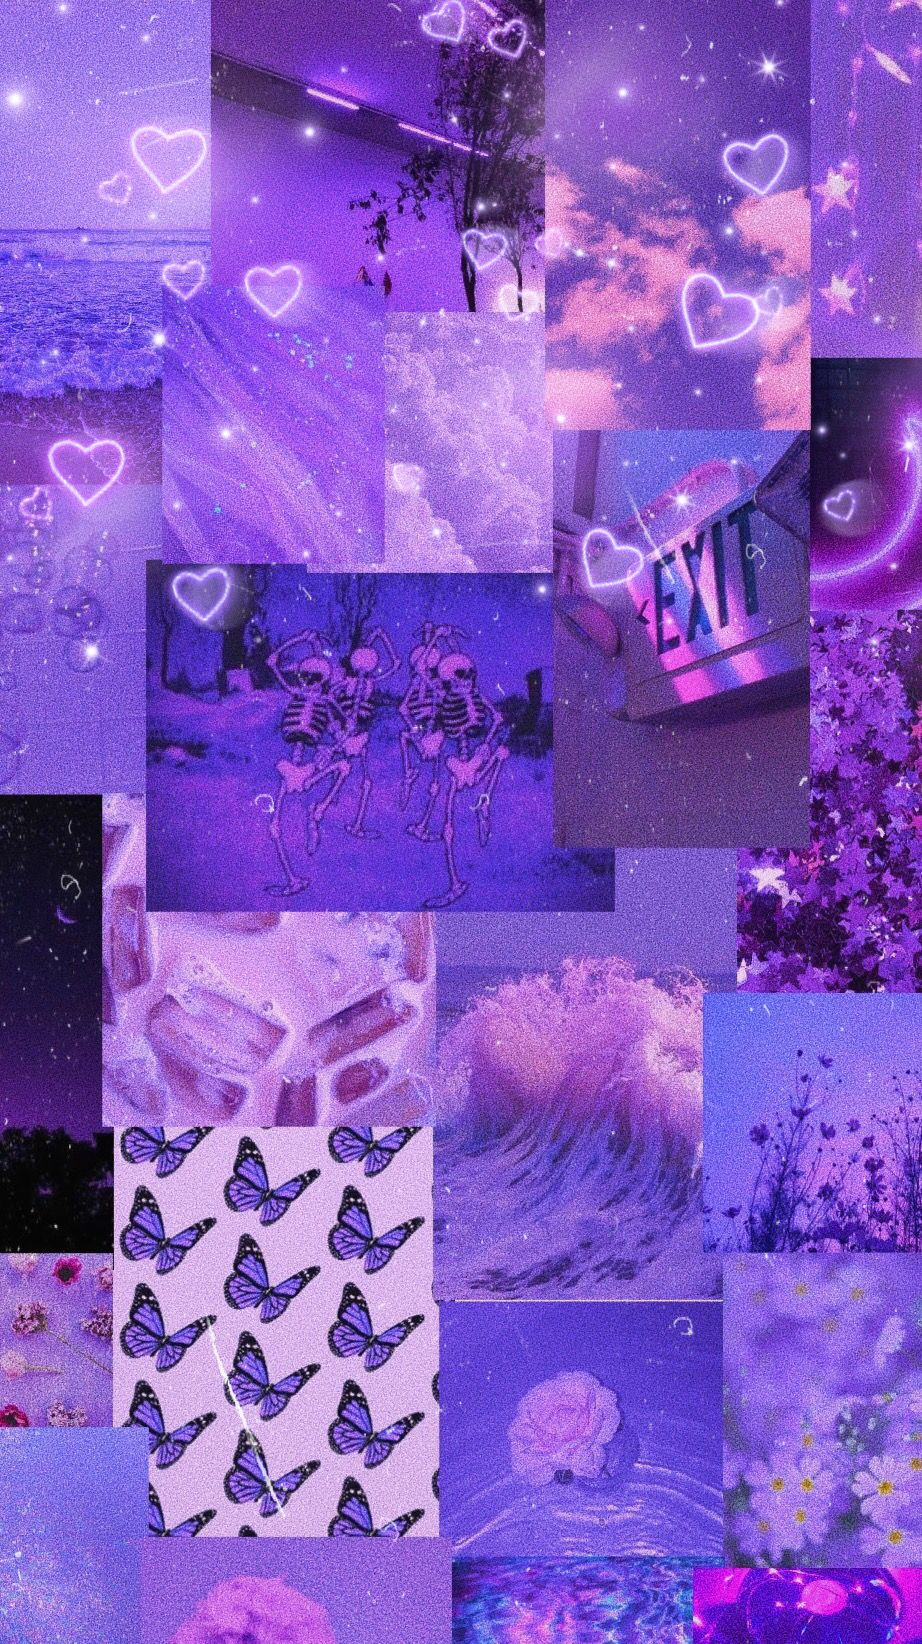 Our smartphones are the most precious and most frequently used item in our daily lives. Purple aesthetic wallpaper in 2020 | Purple aesthetic ...